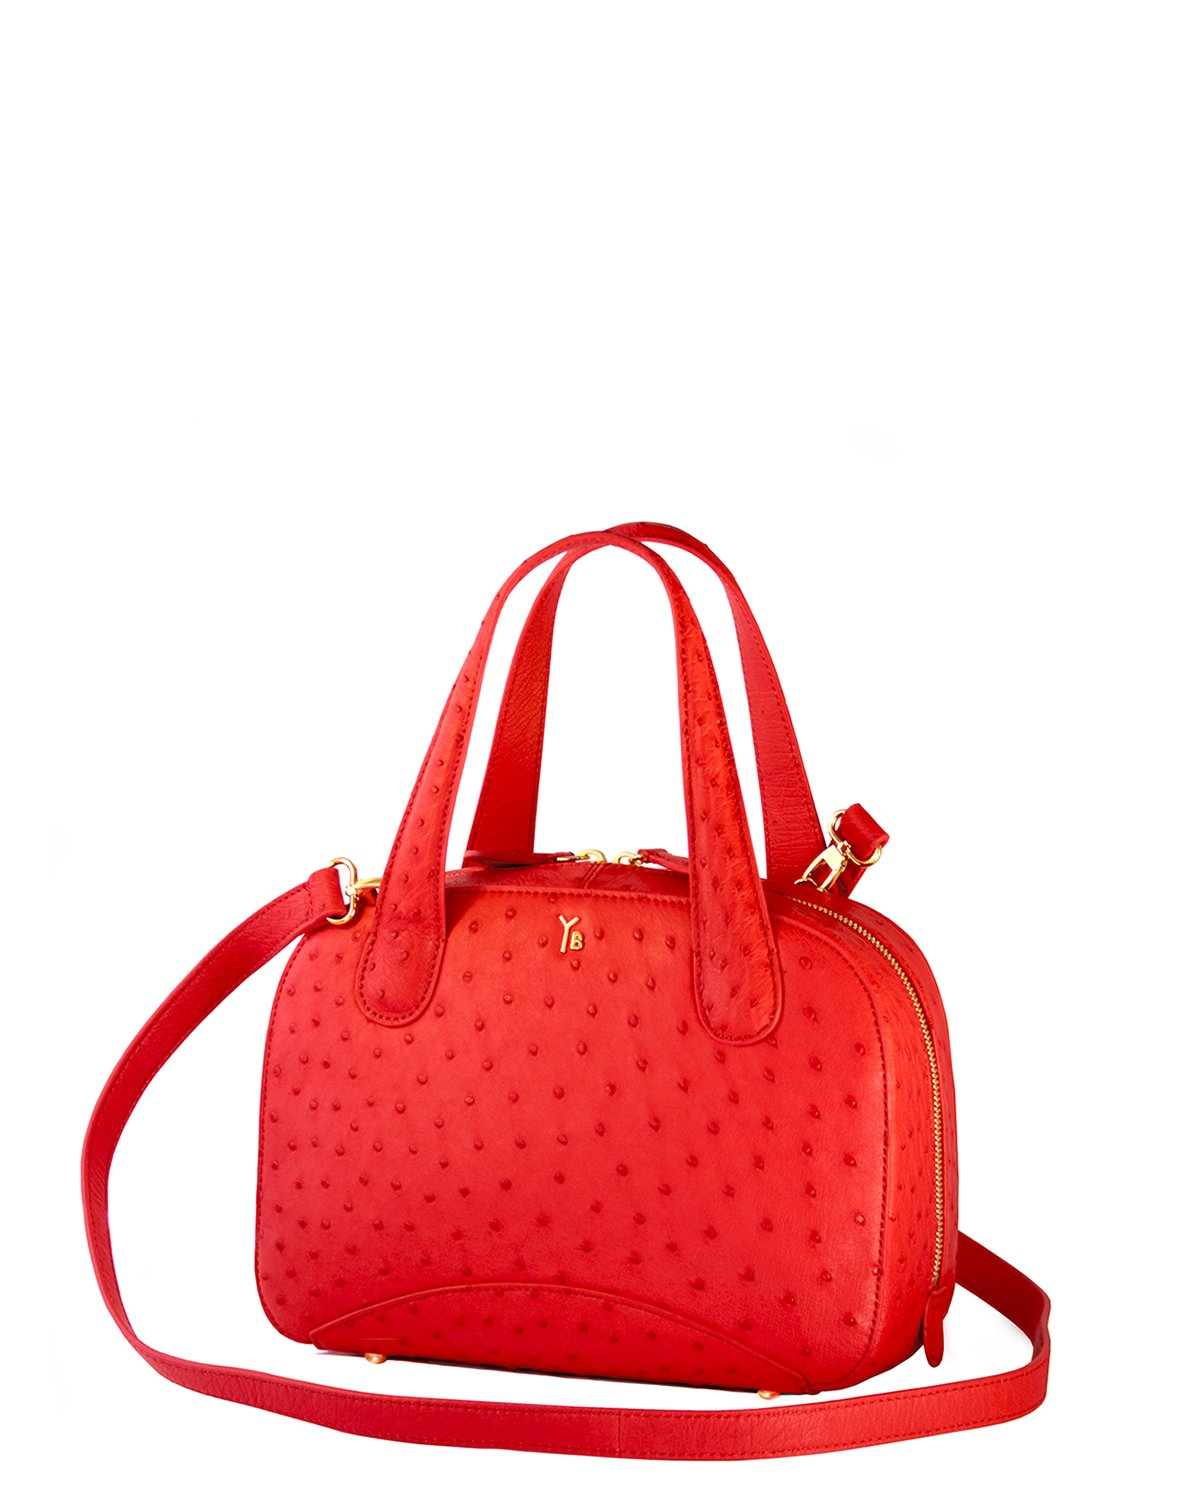 Bright Tomato Red colored Ostrich Genuine Sustainable Smallish Tote Handbag Yara Bashoor Angle View with Long Strap YB Logo